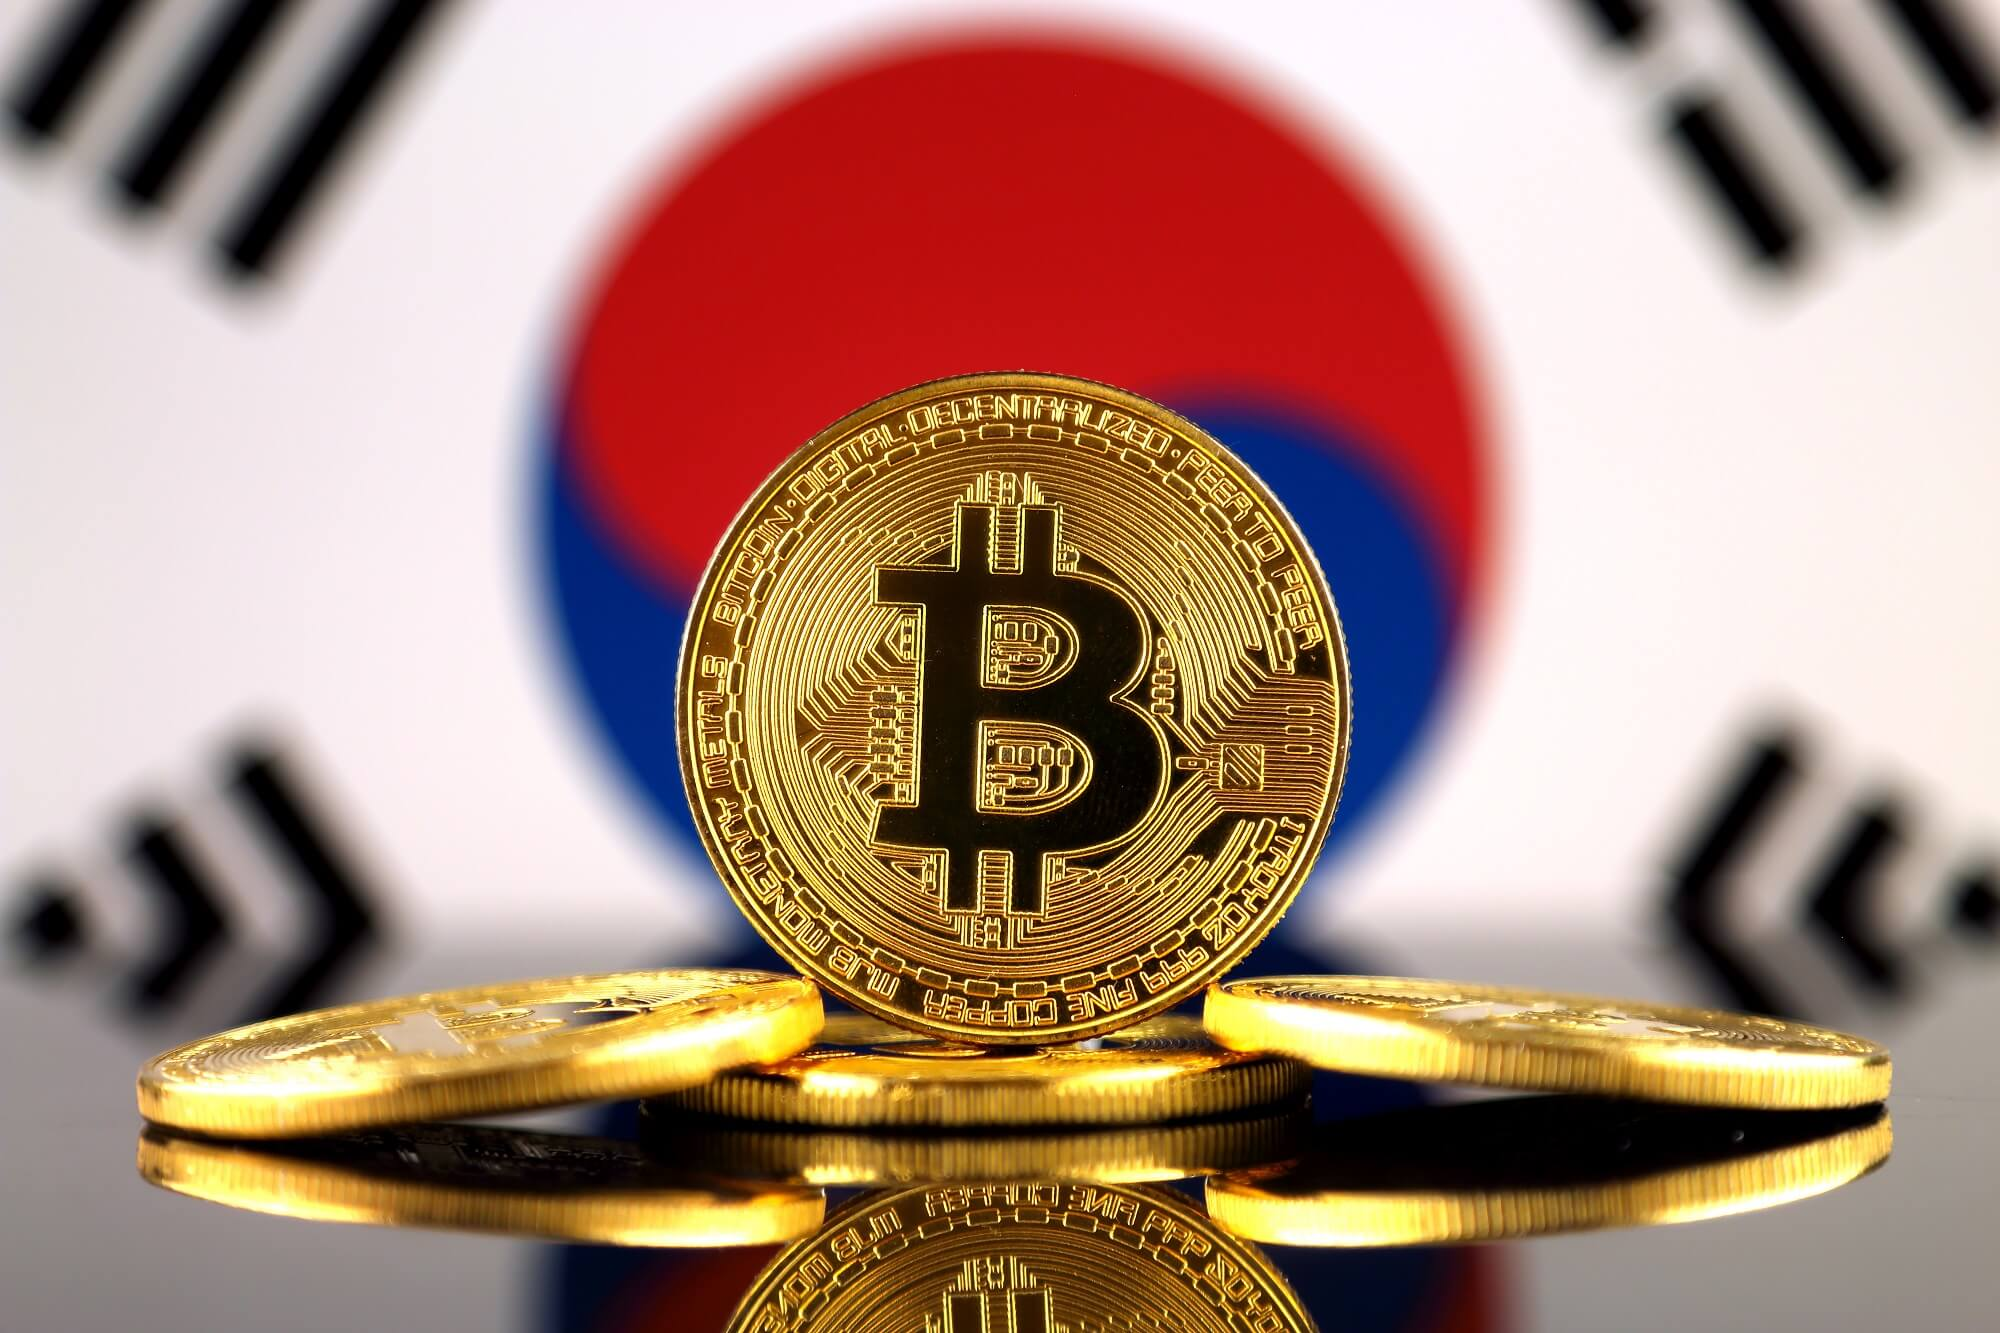 Korean government is with Bitcoin, but why are some people angry?